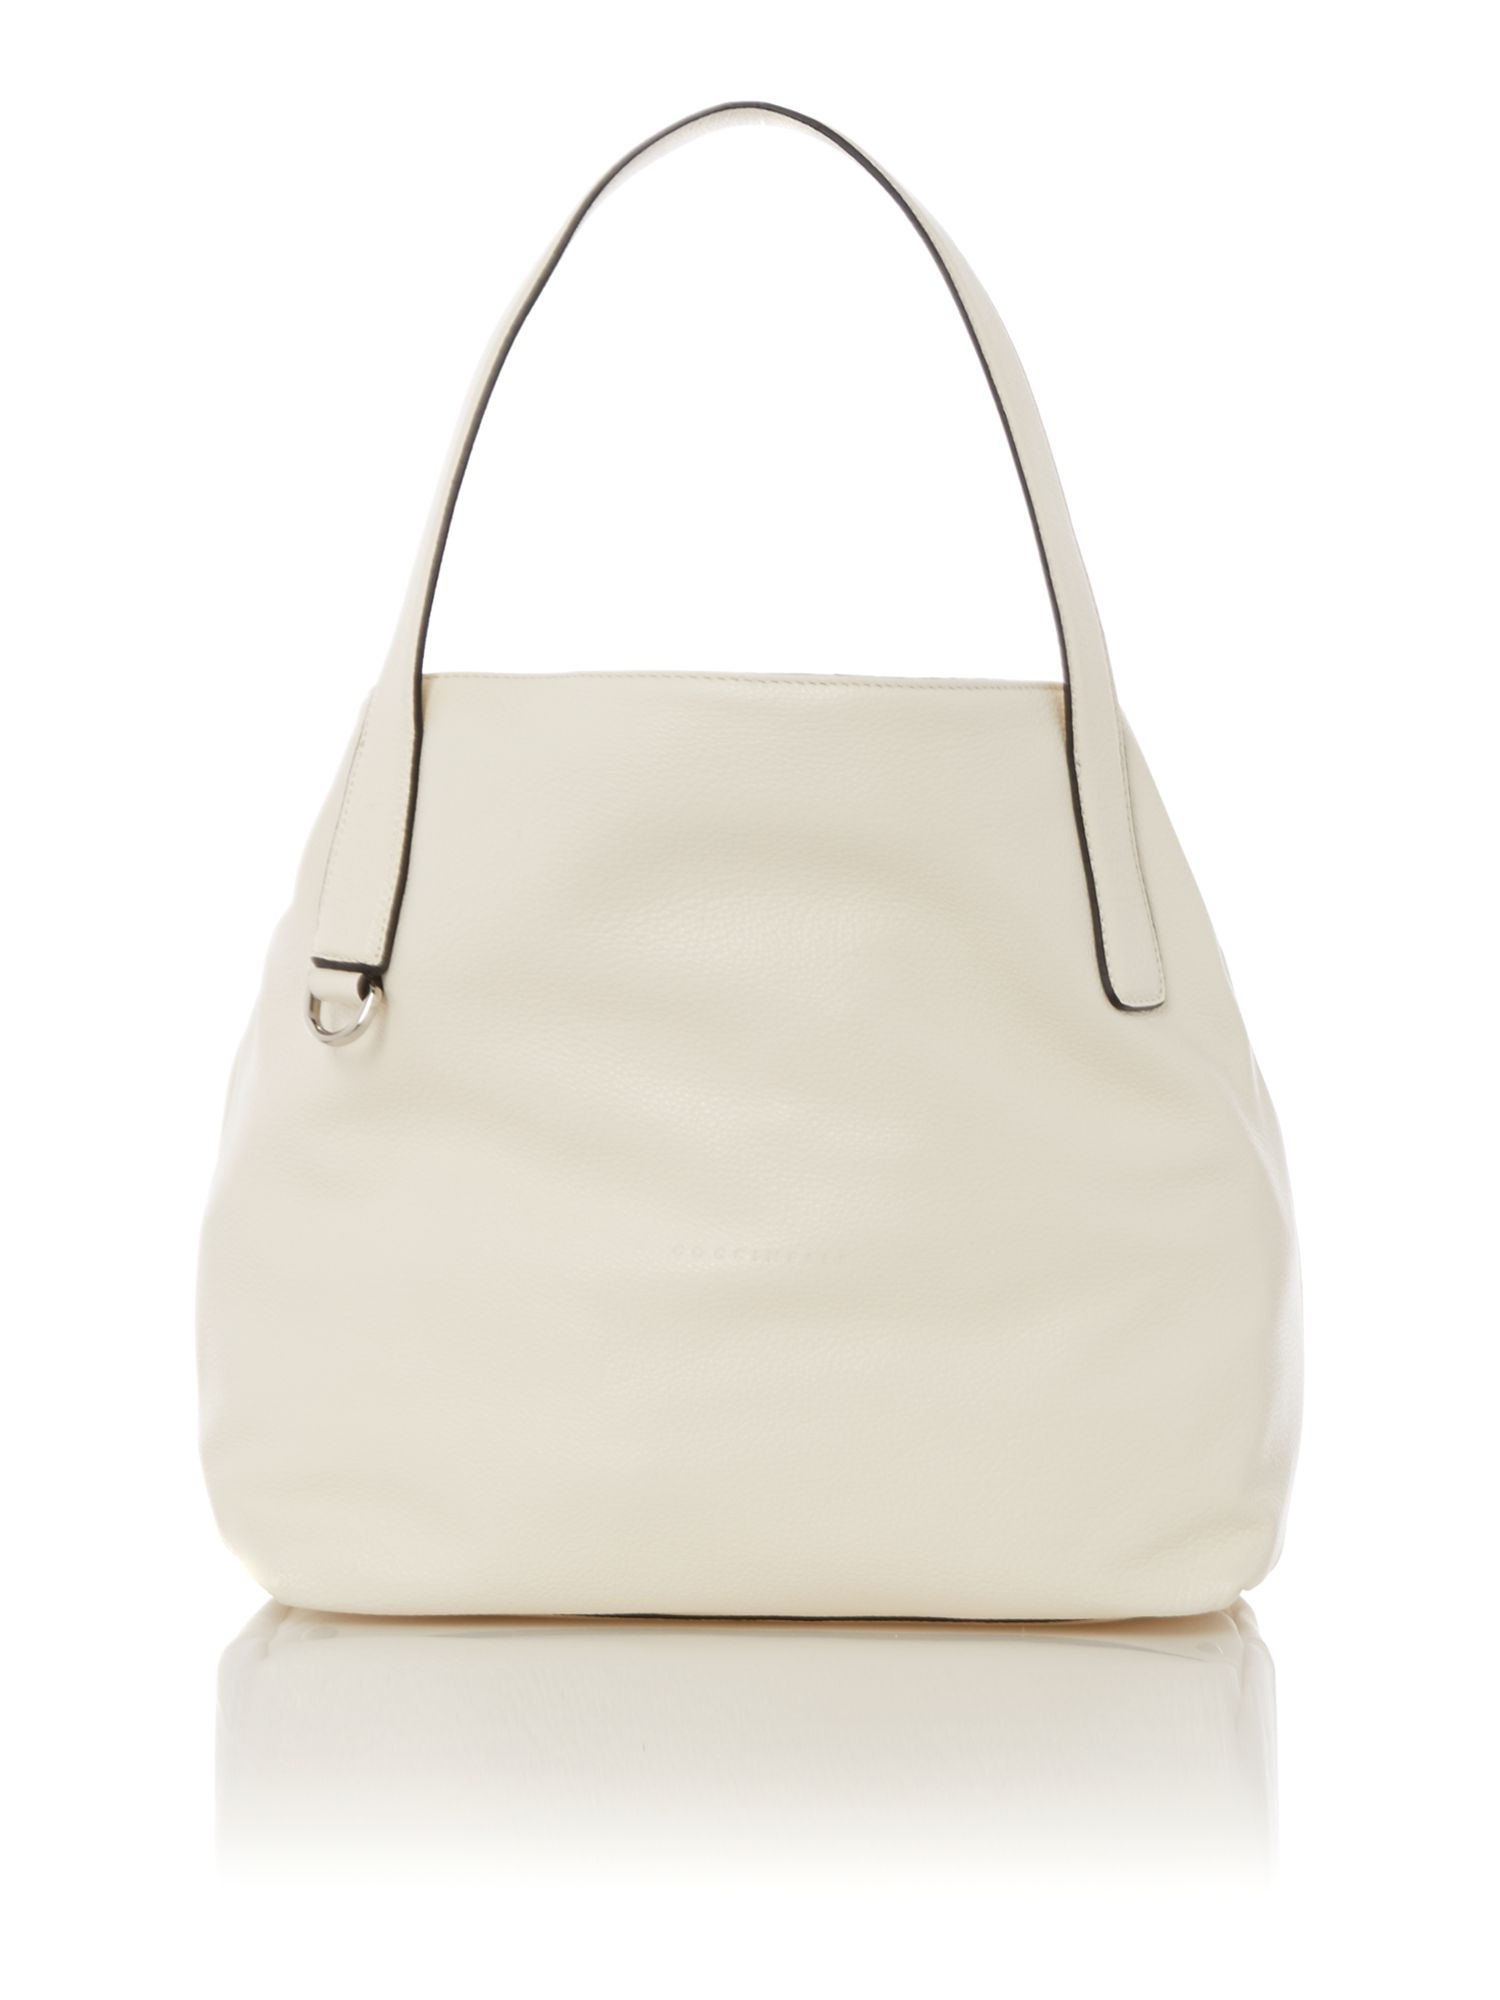 Mila cream tote bag